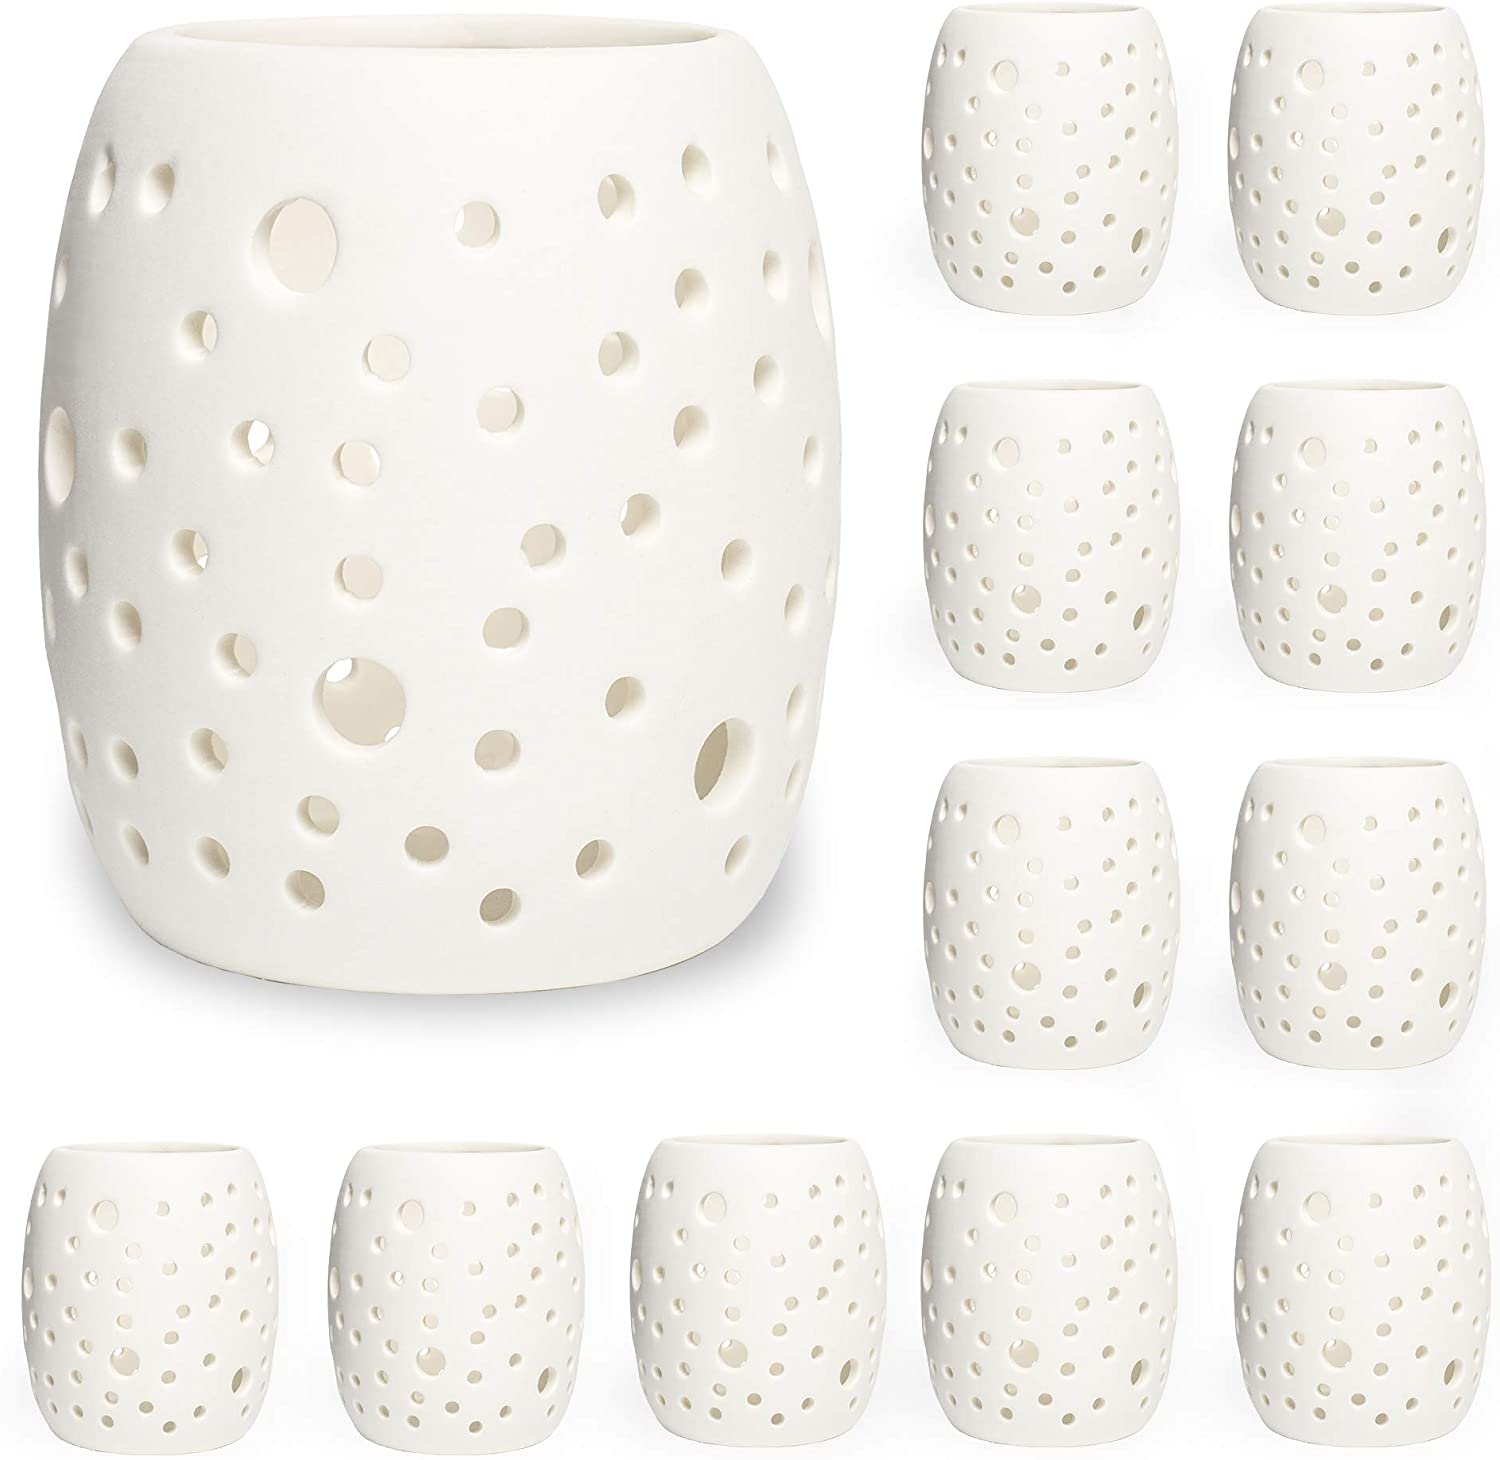 Findley Votive Candle Holders Set Holder Tealight Bulk Max 58% OFF At the price of surprise